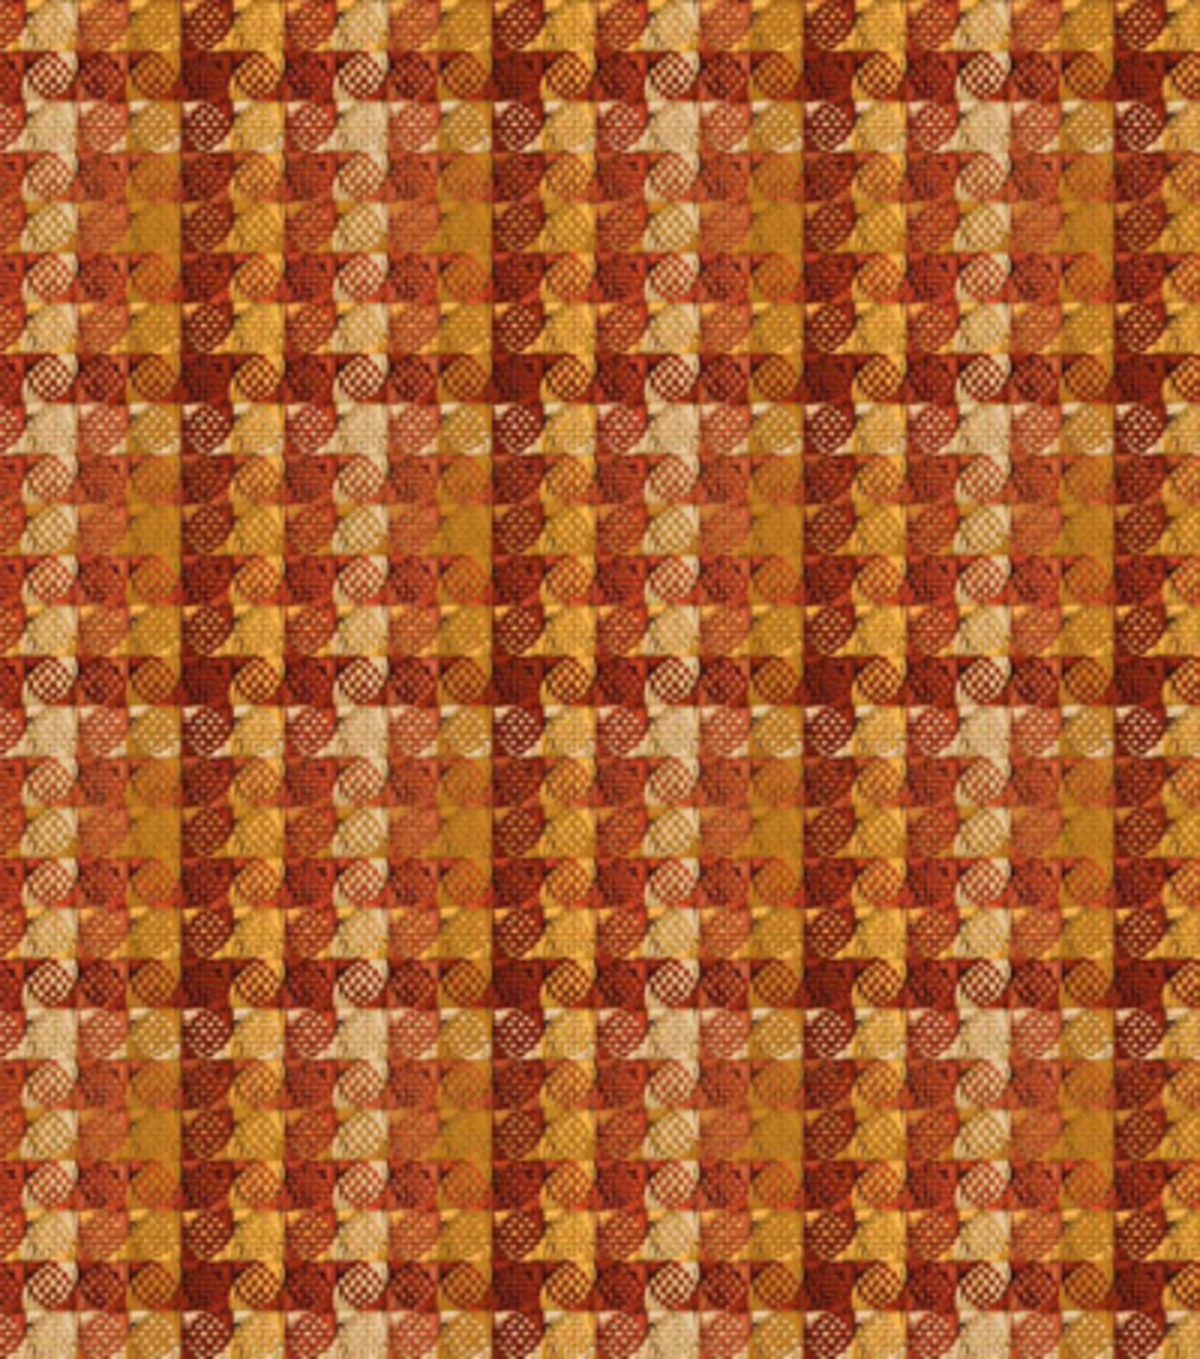 Home Decor 8\u0022x8\u0022 Fabric Swatch-HGTV HOME Checkered Past Harvest